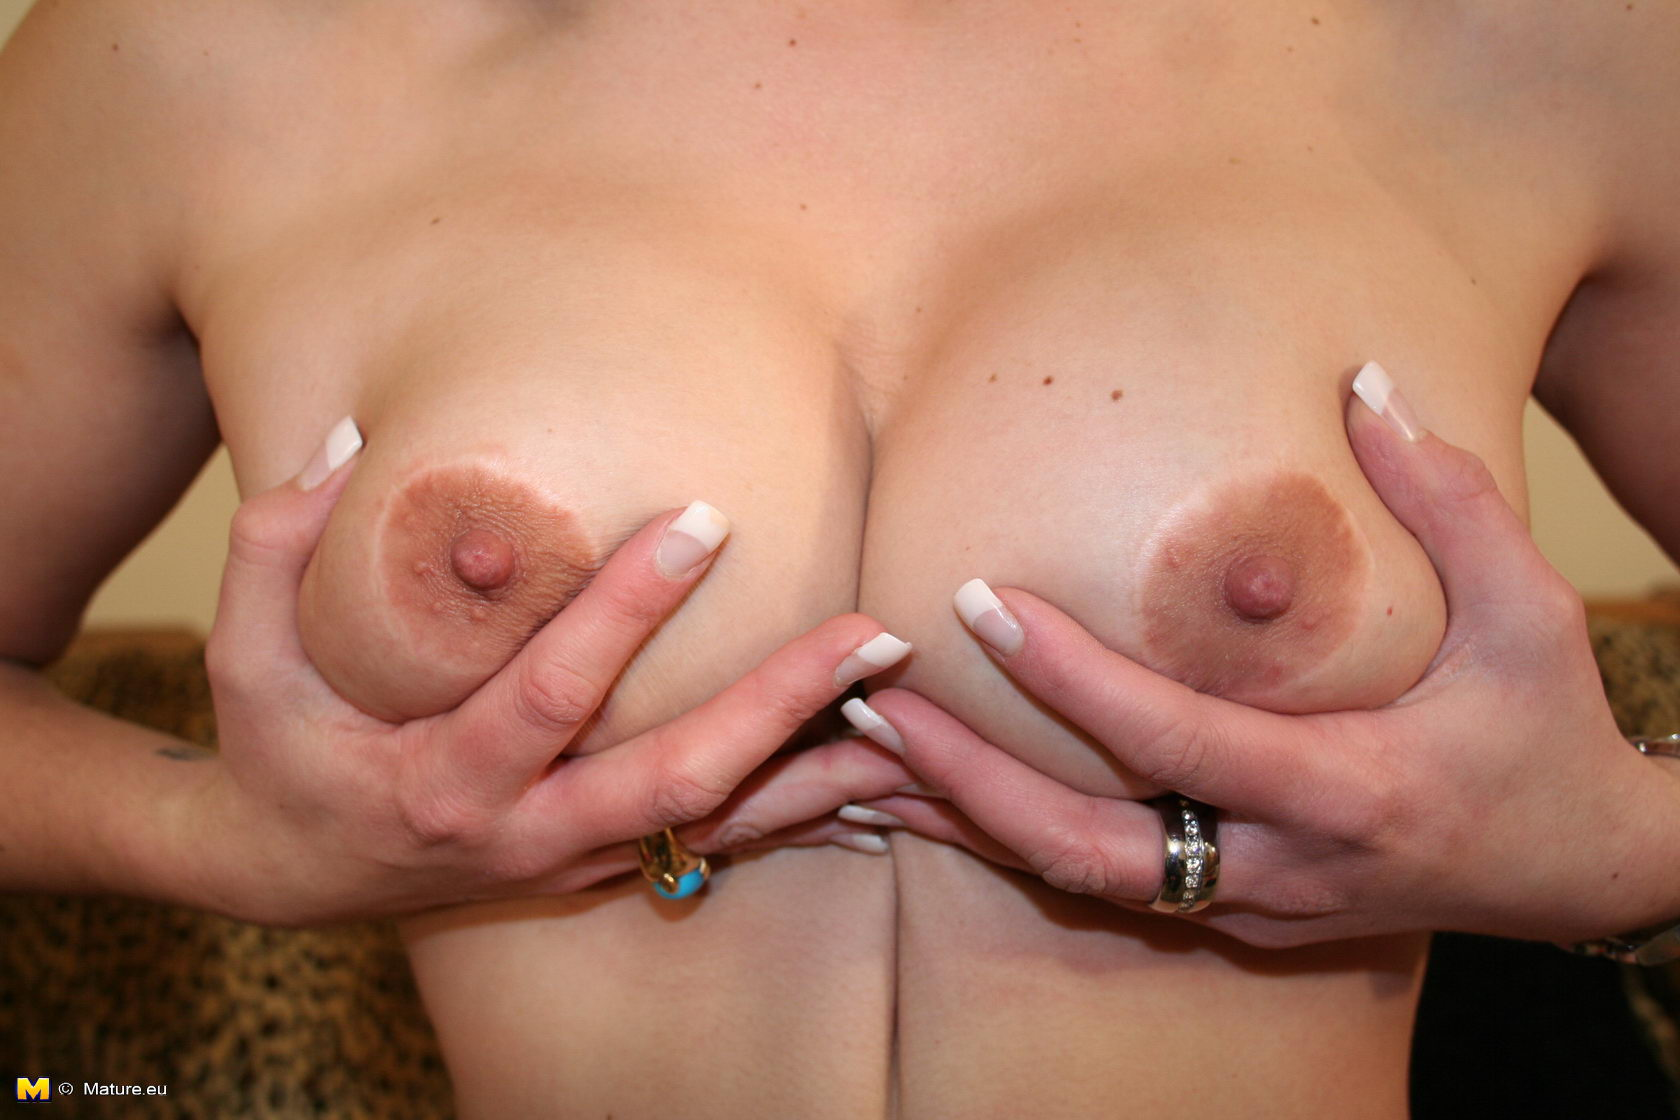 A peek at her mature pussy